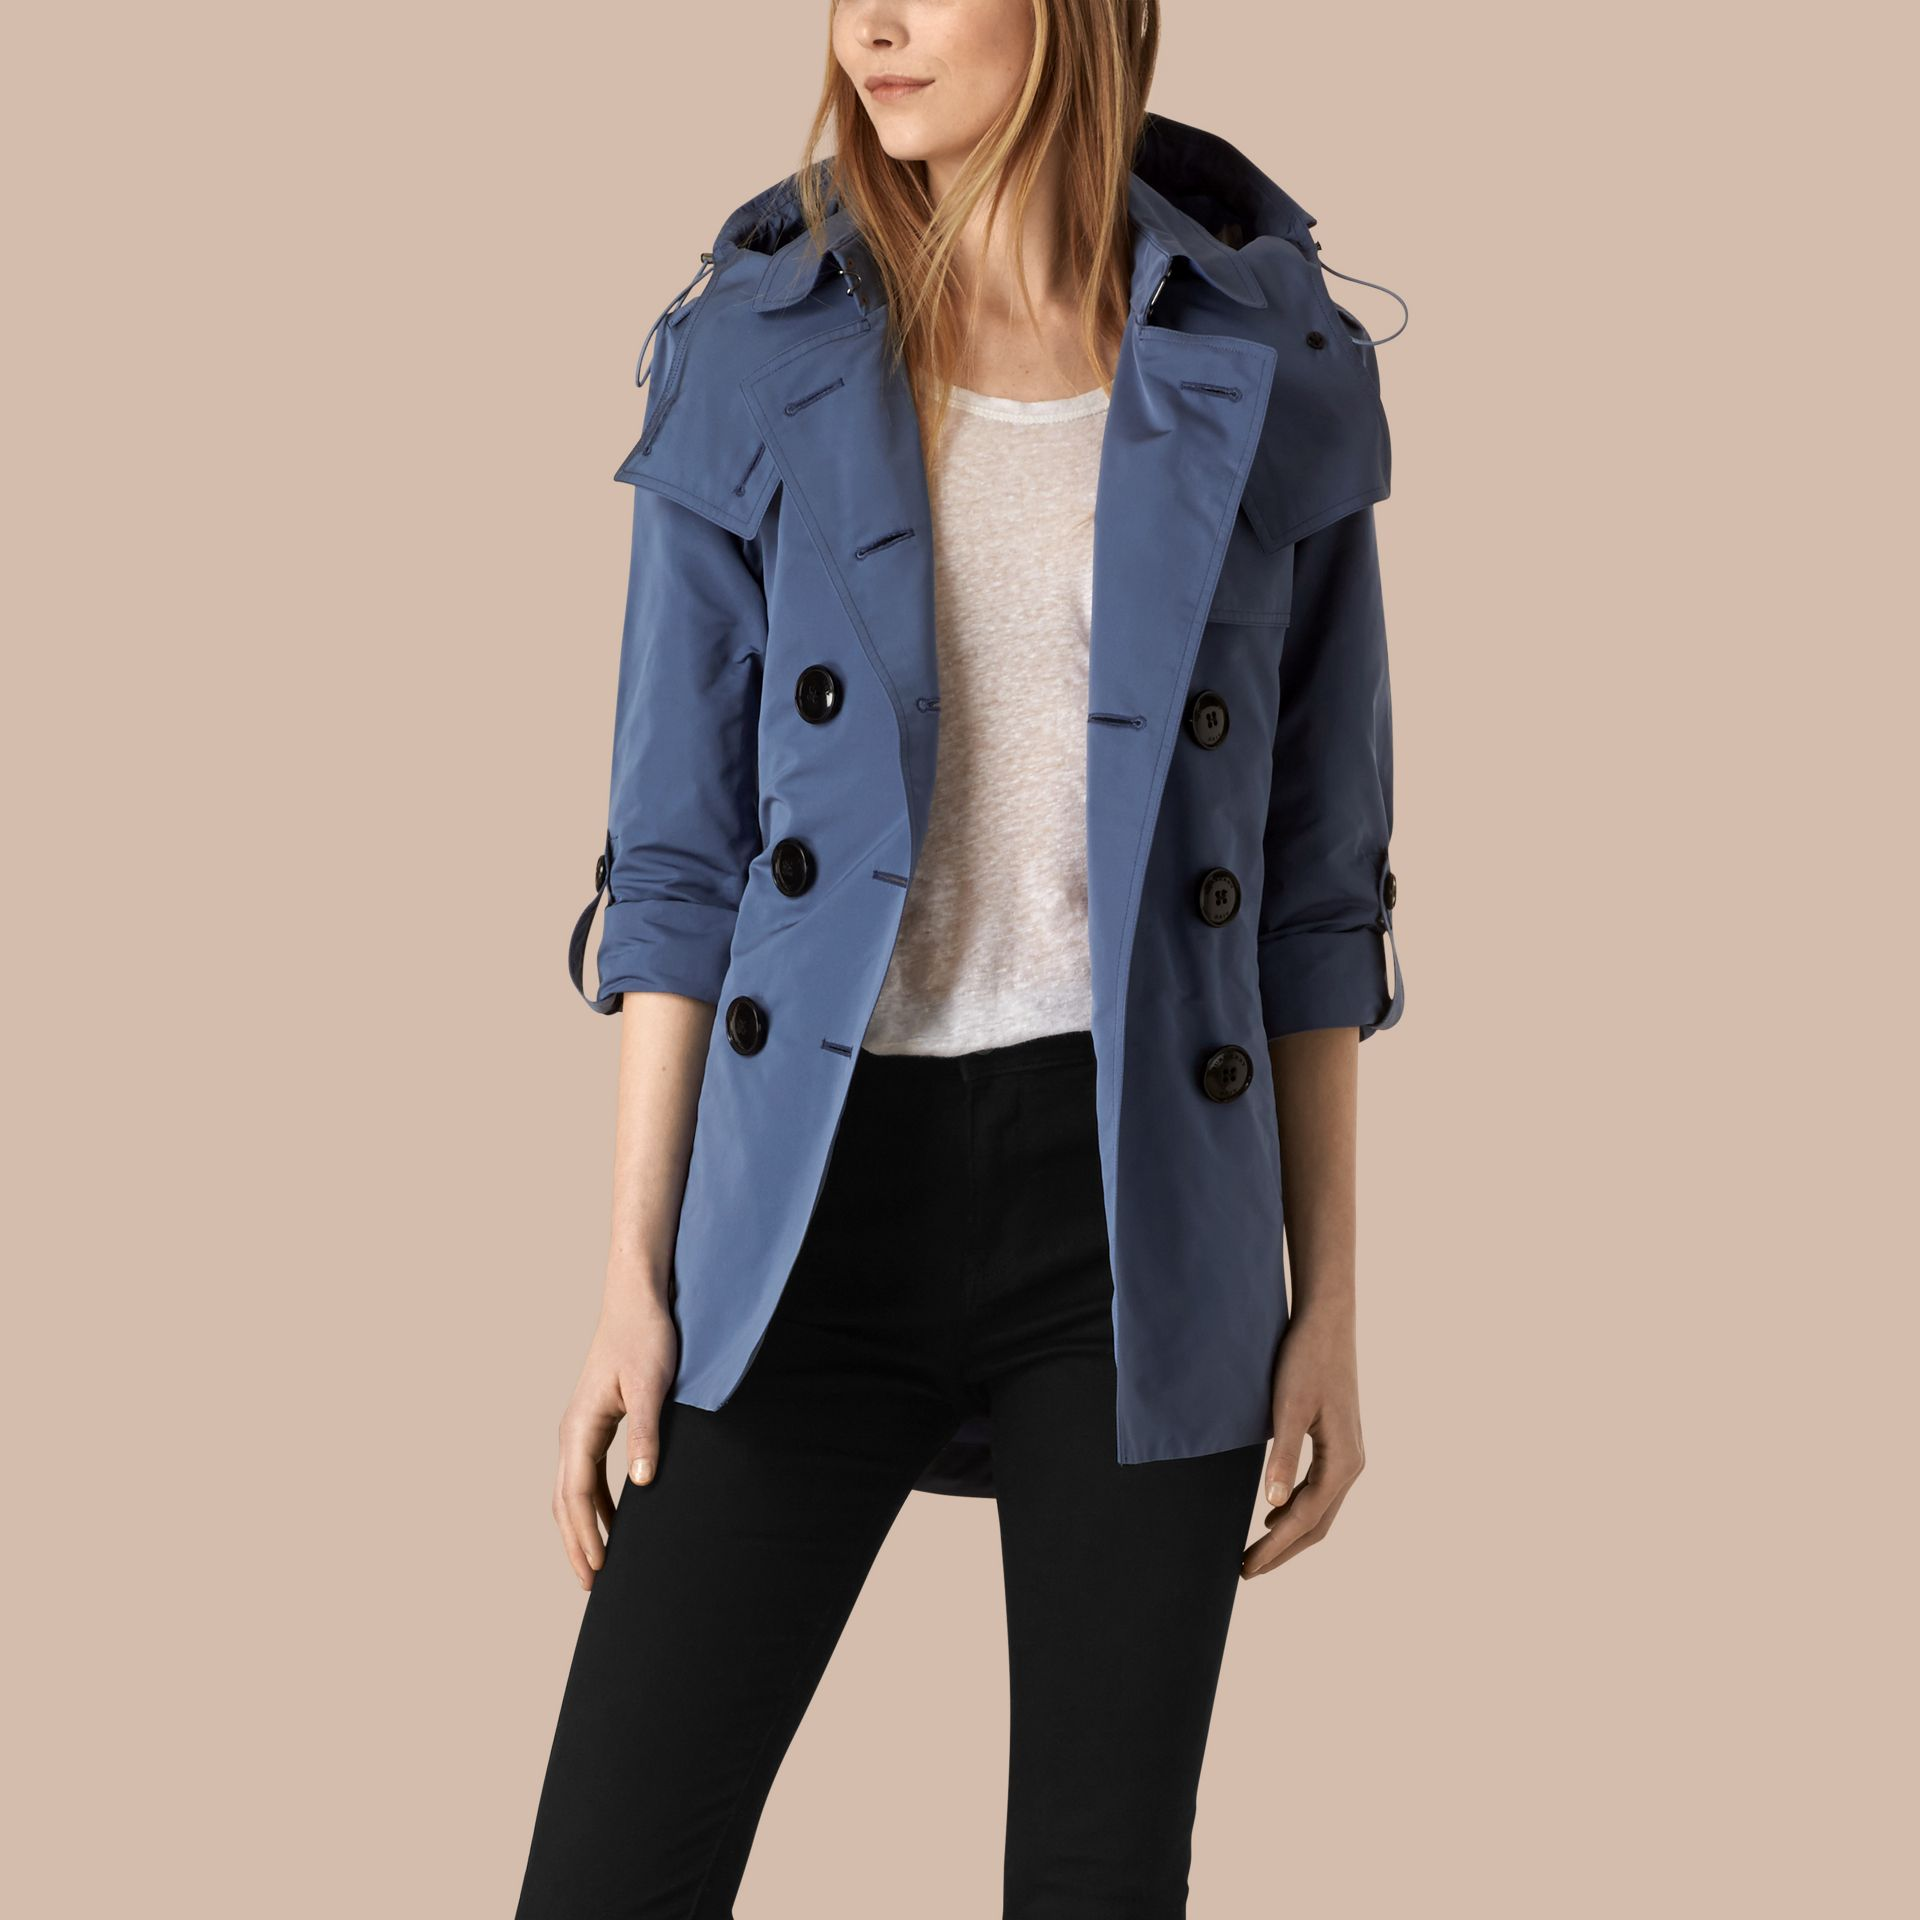 Pale lupin blue Showerproof Trench Coat with Detachable Hood Pale Lupin Blue - gallery image 1